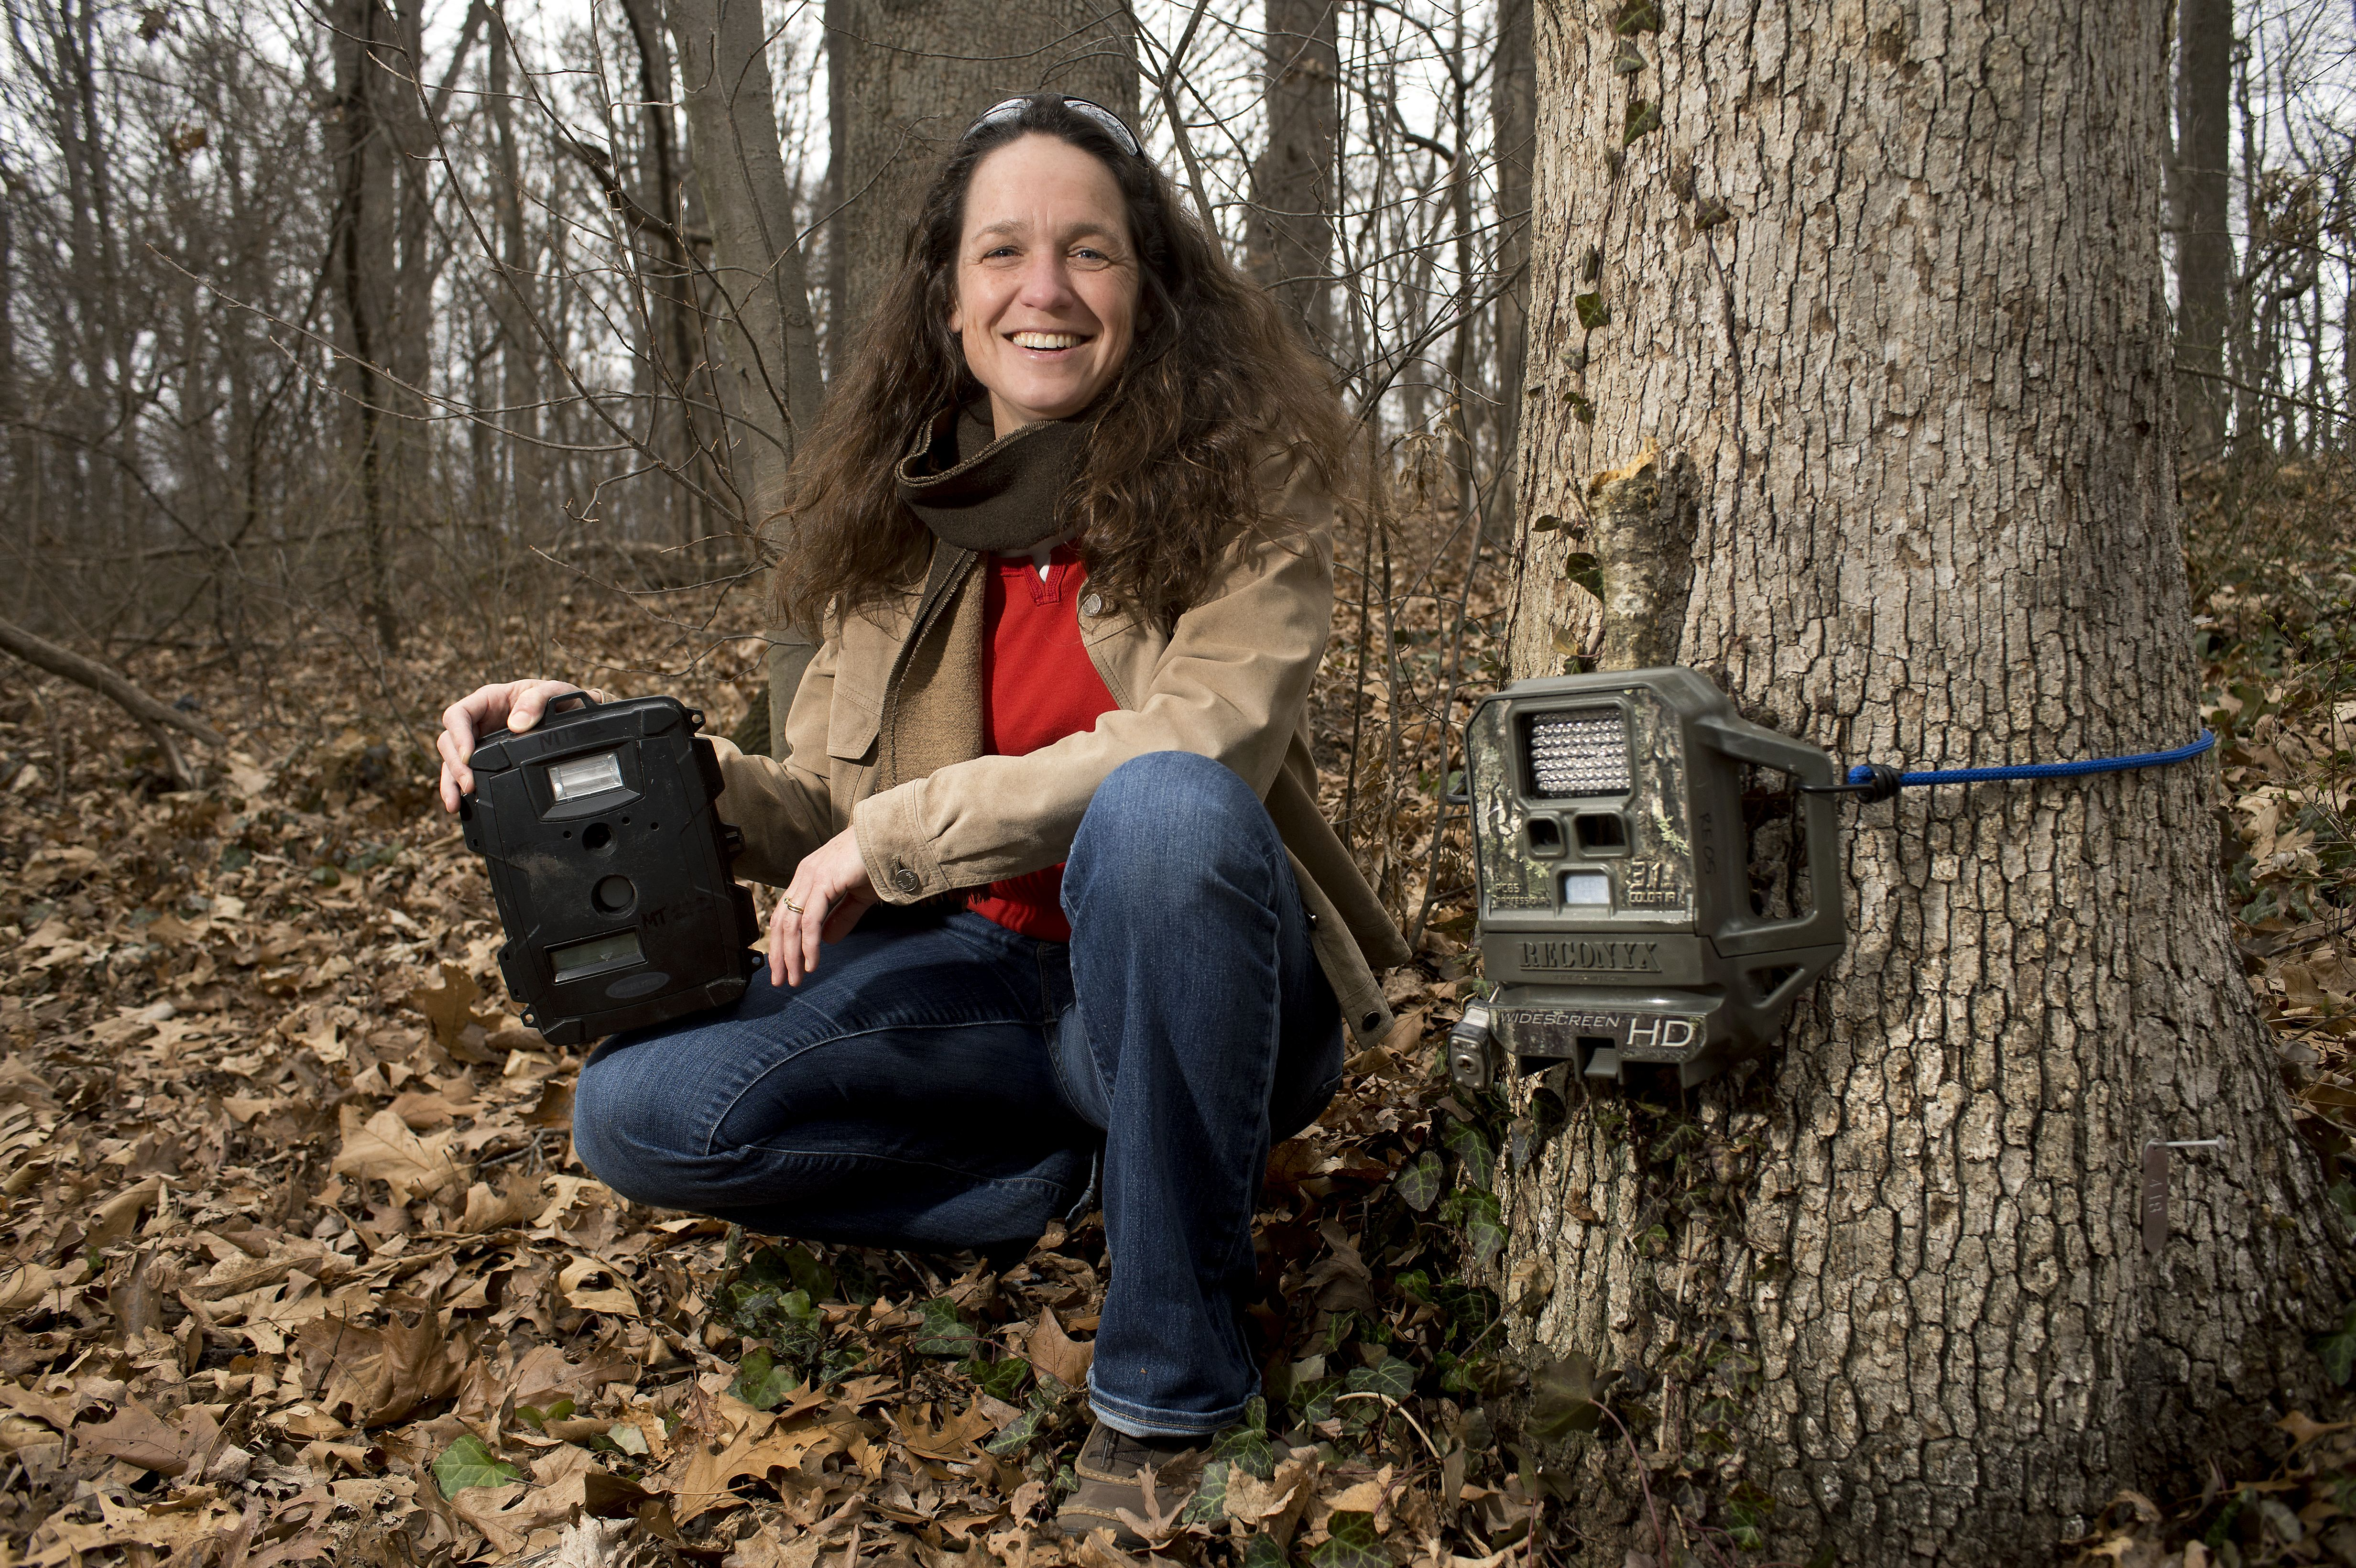 Marcella Kelly in the woods with a camera trap